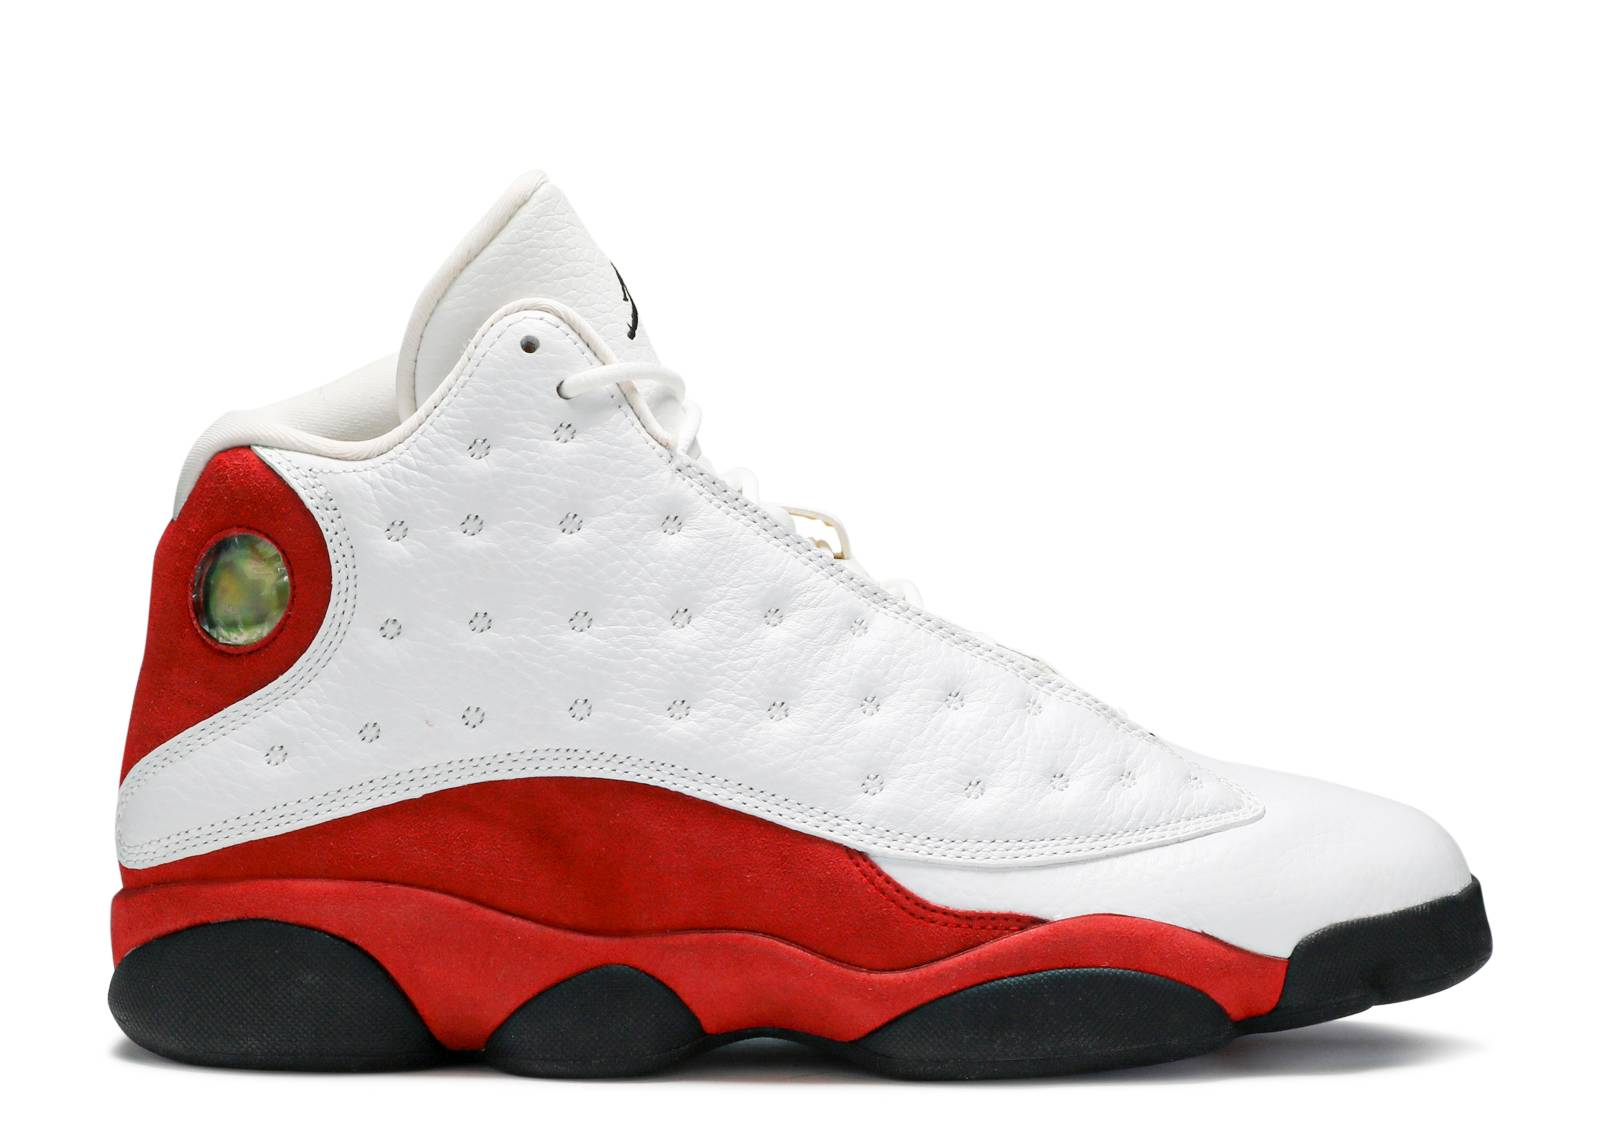 official photos 08211 265c7 air jordan 13 retro